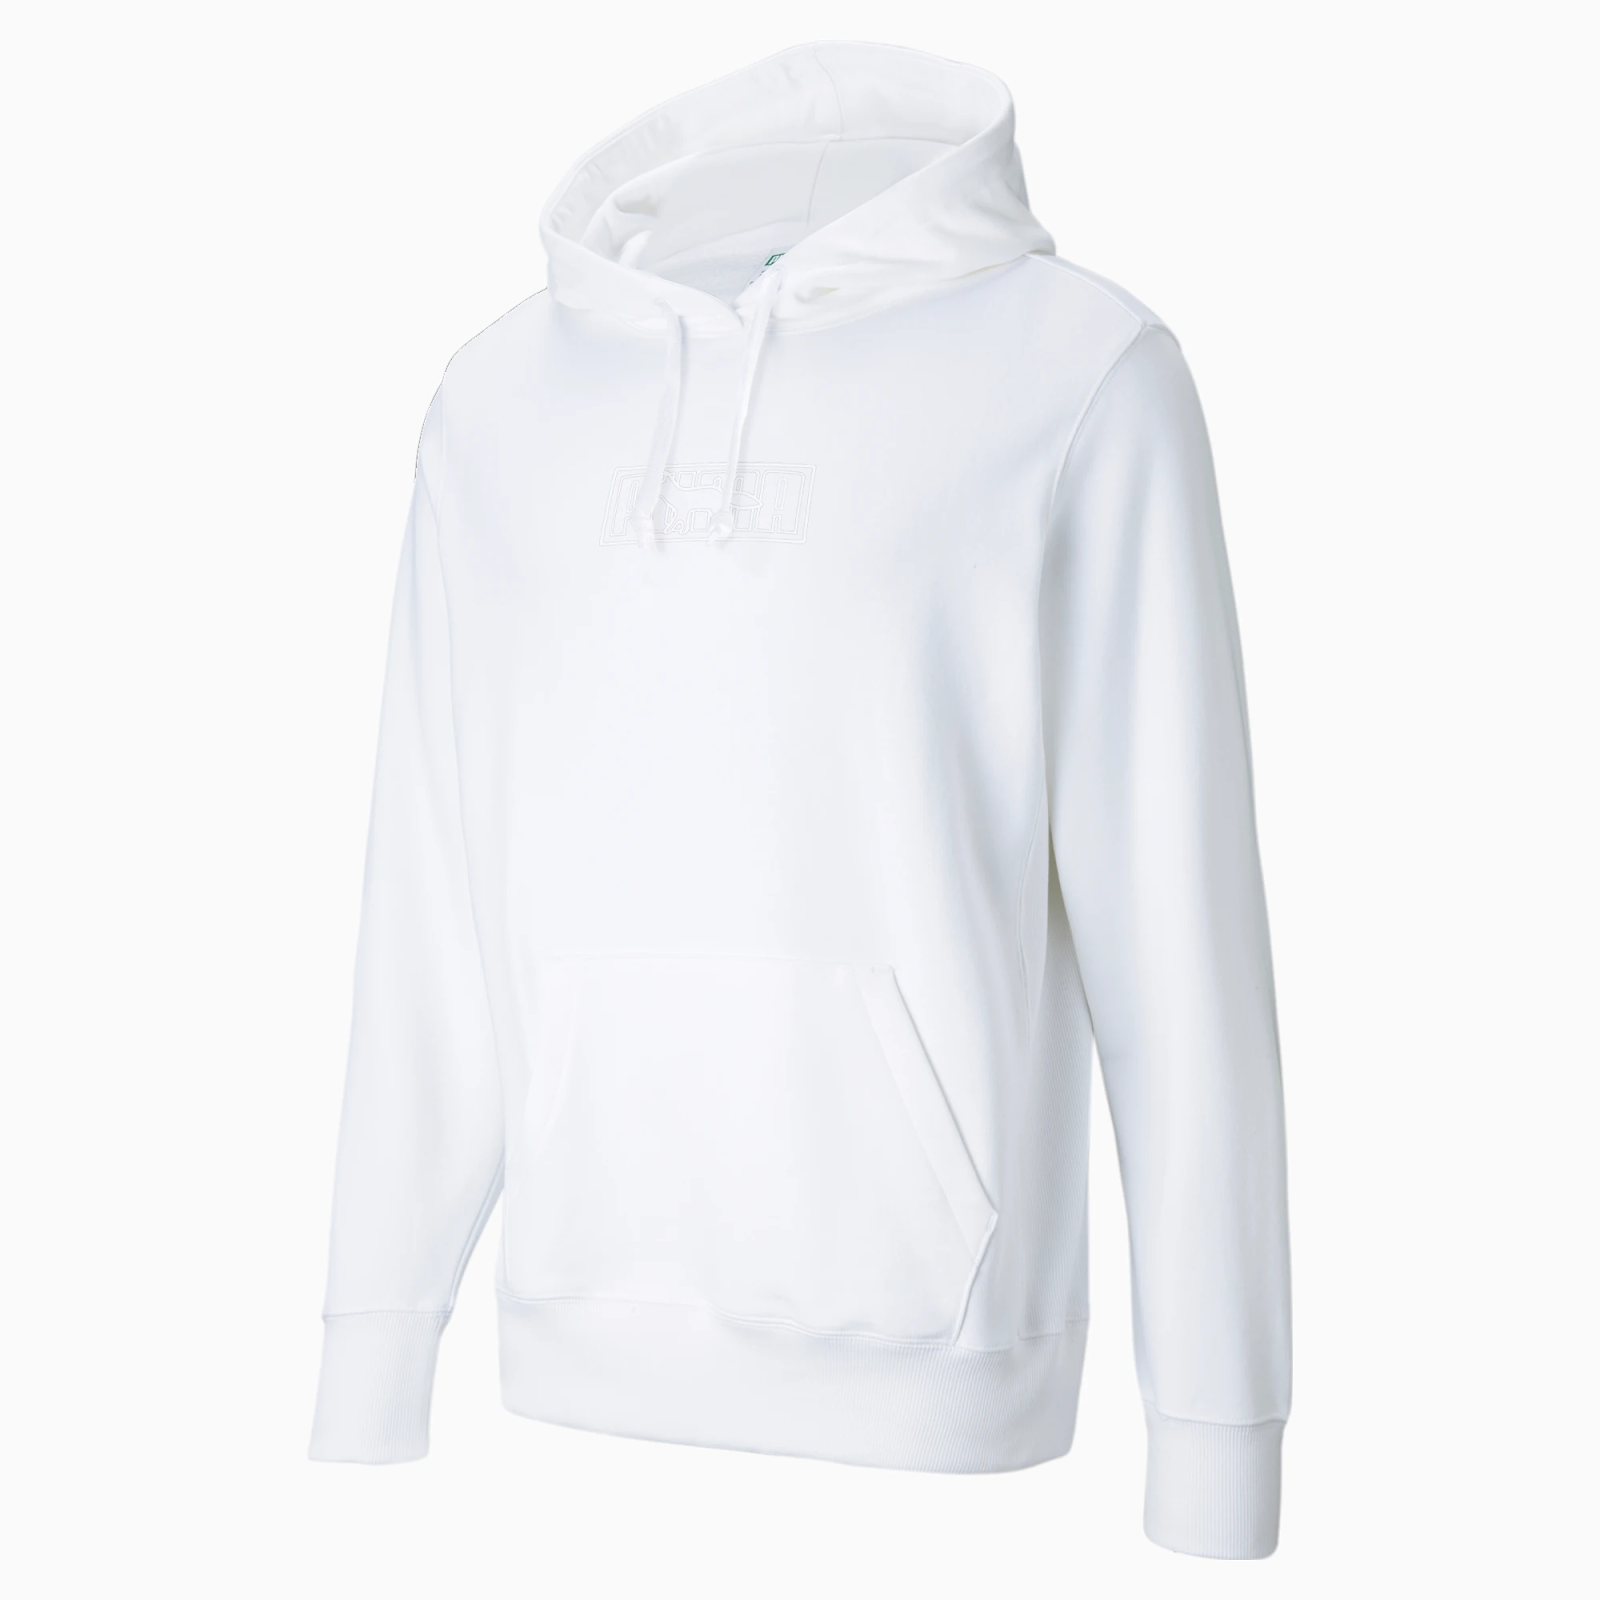 What is a Hoodie